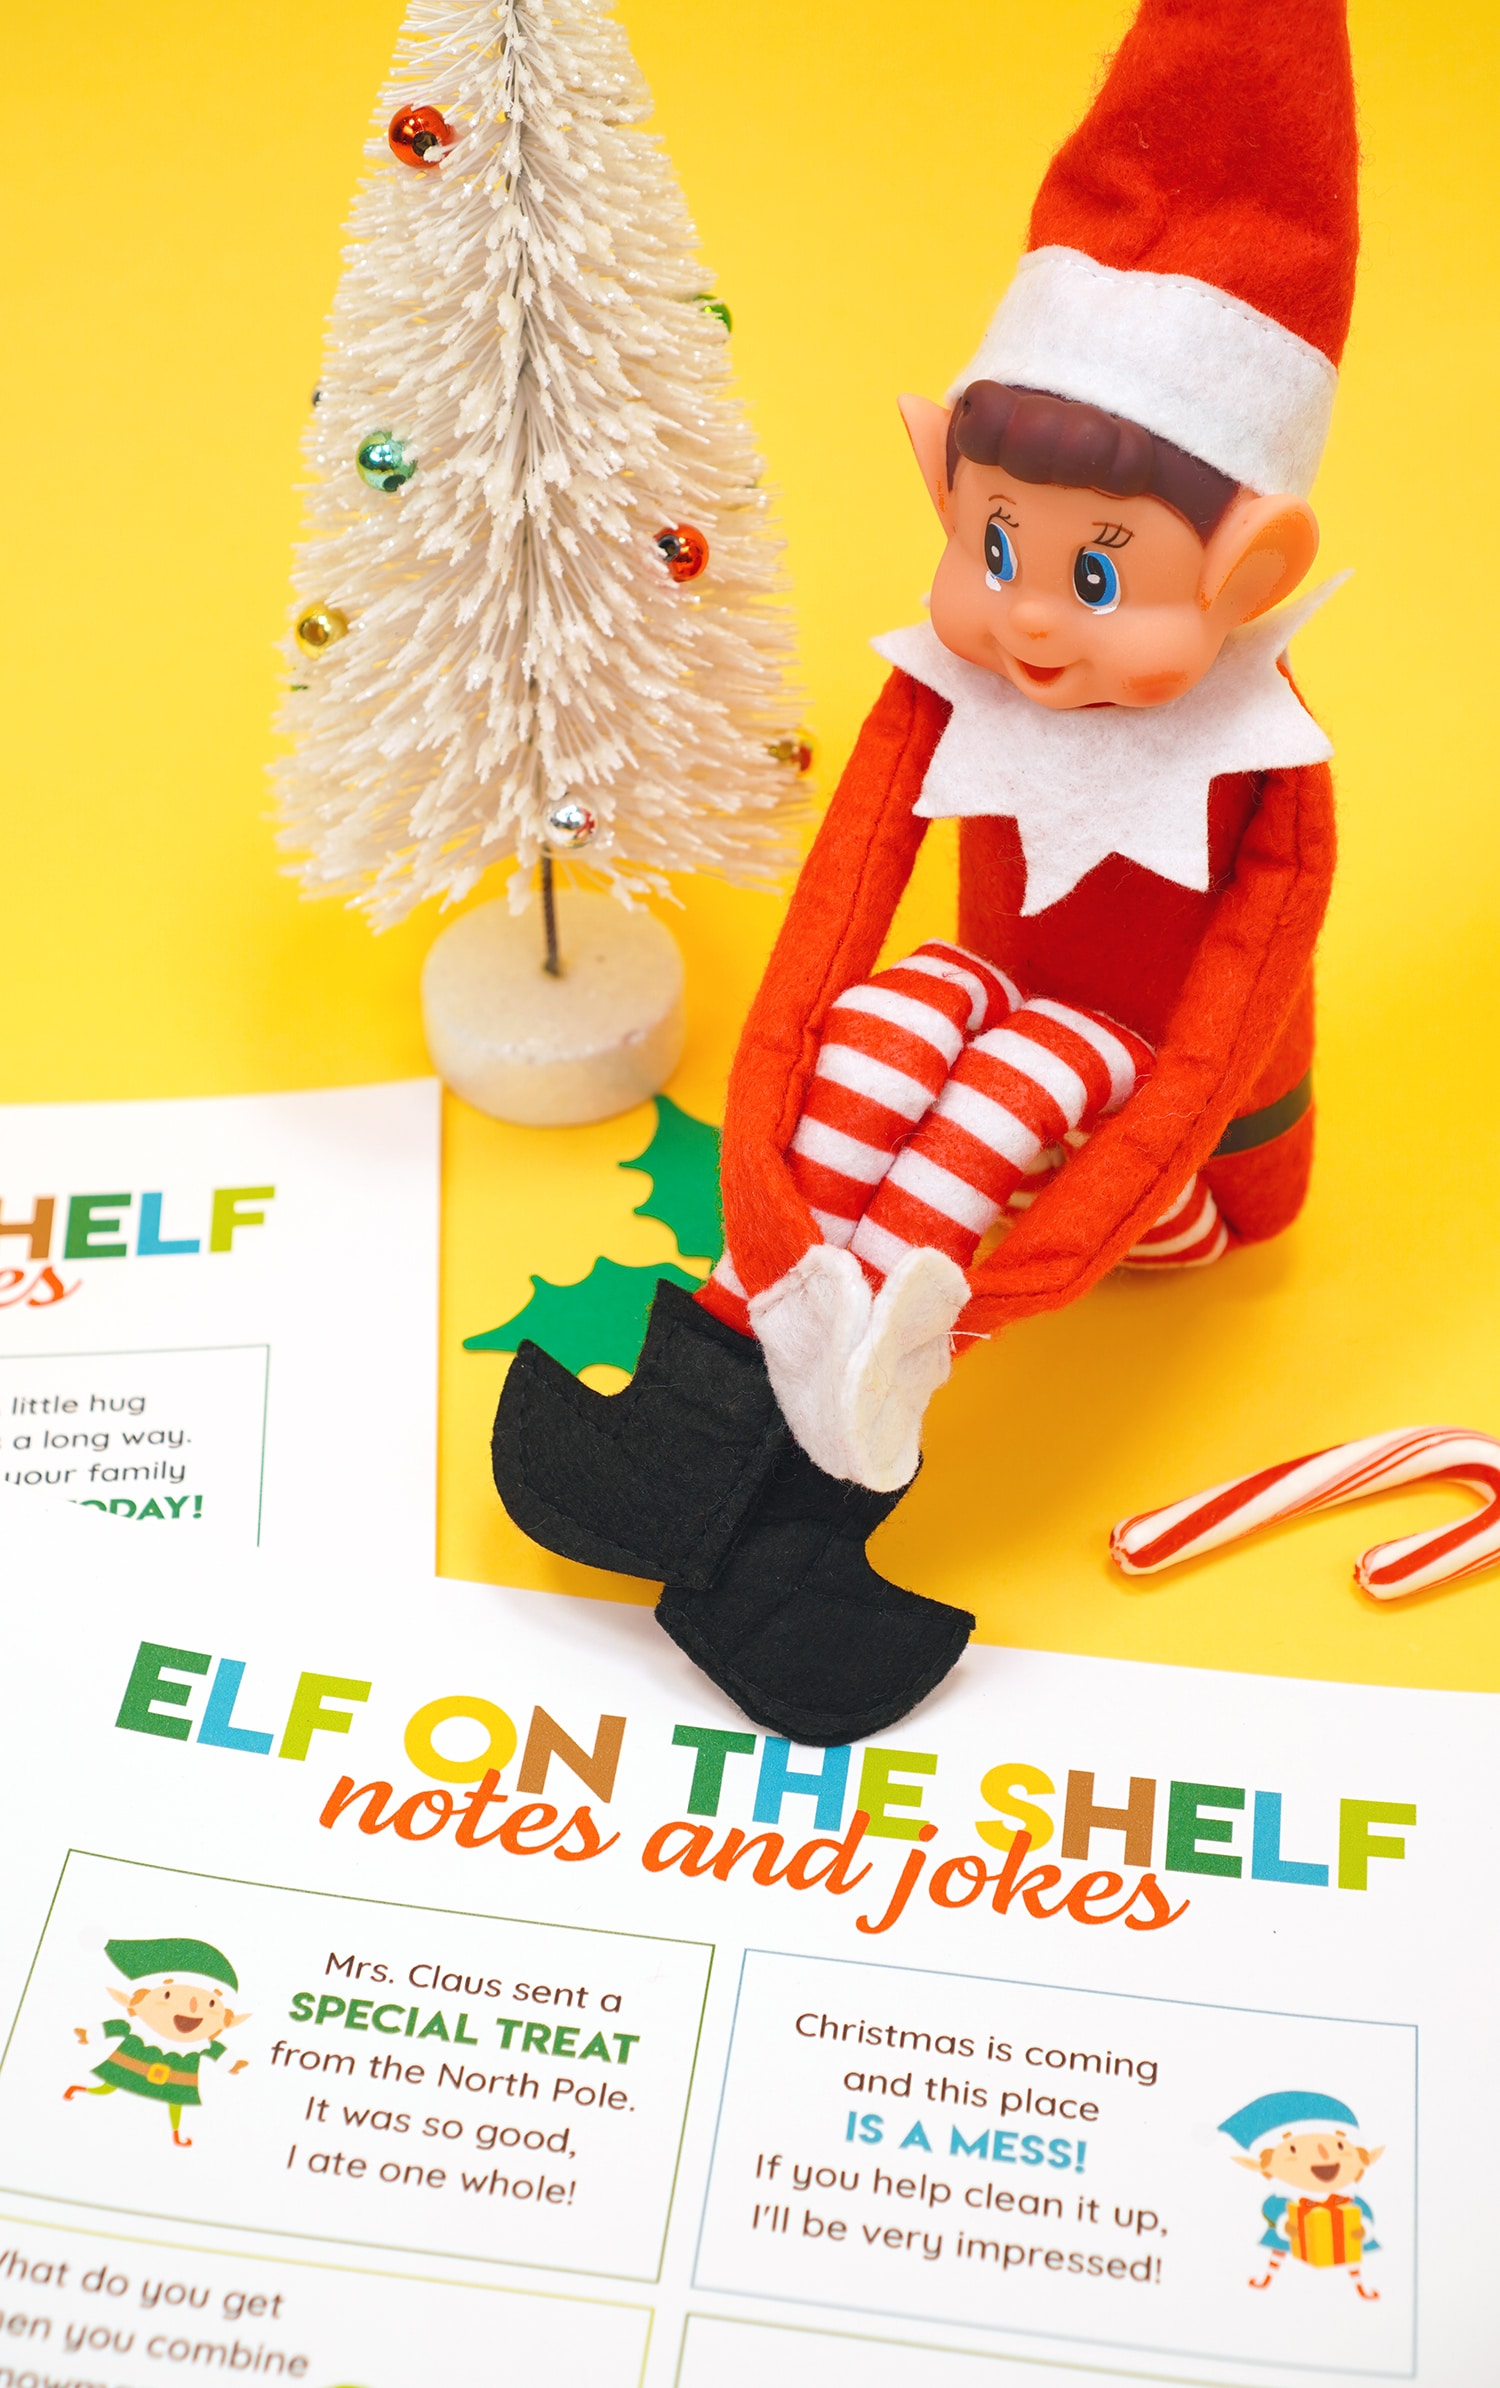 Elf doll on a yellow background with printed Elf on the Shelf note and joke cards and candy canes and Christmas decorations in the background.